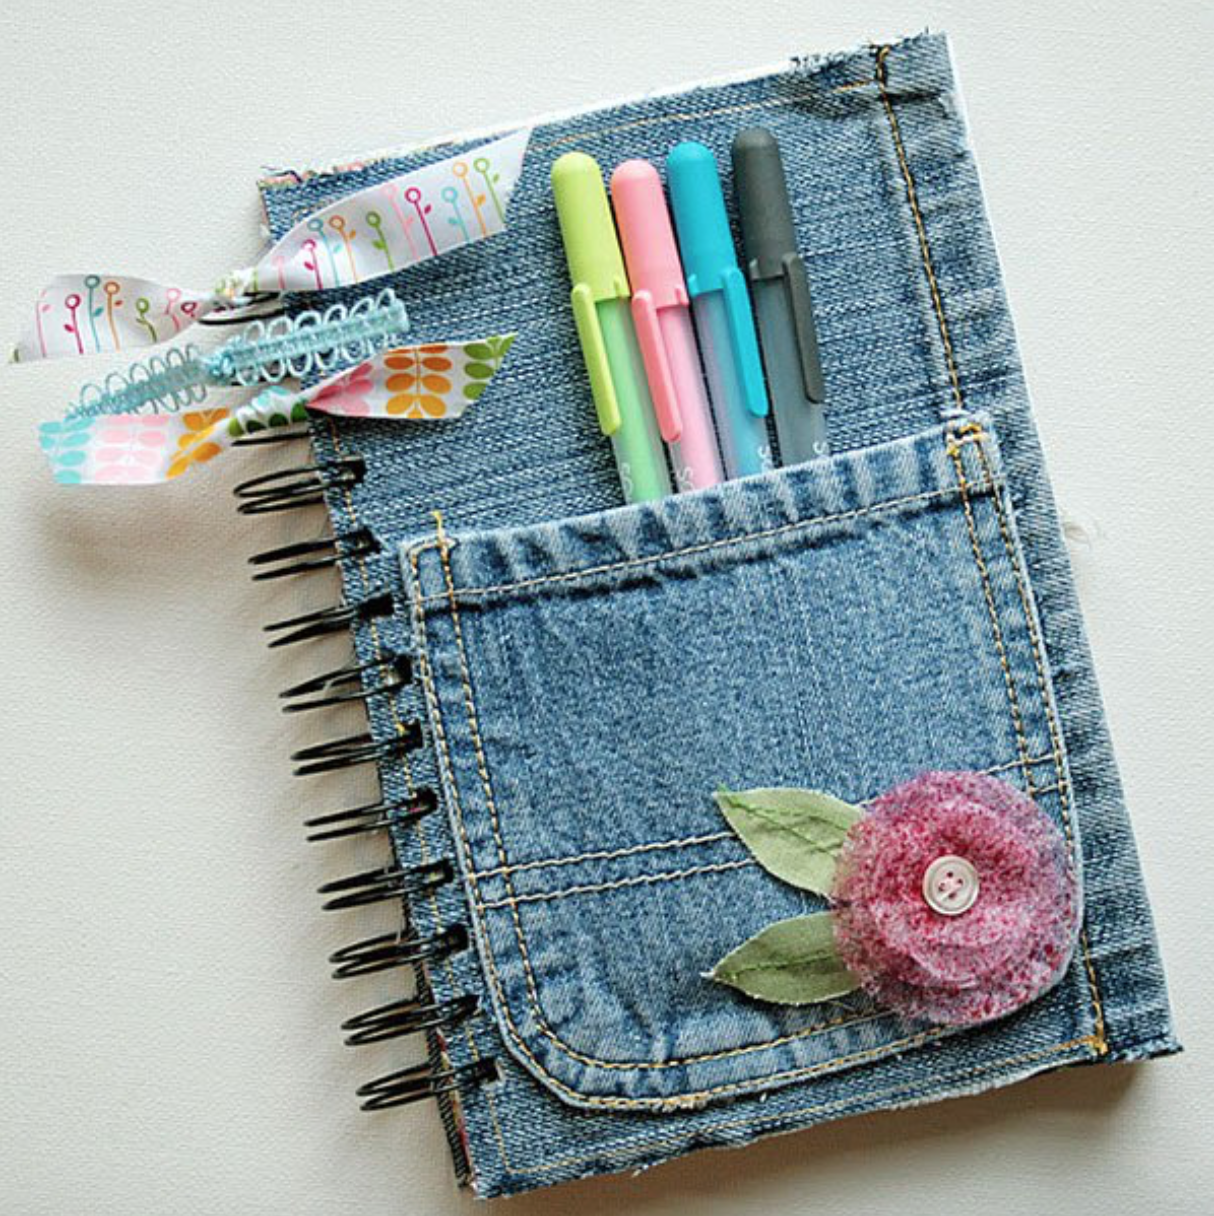 8 Easy Ways To Decorate Your Notebooks This School Year